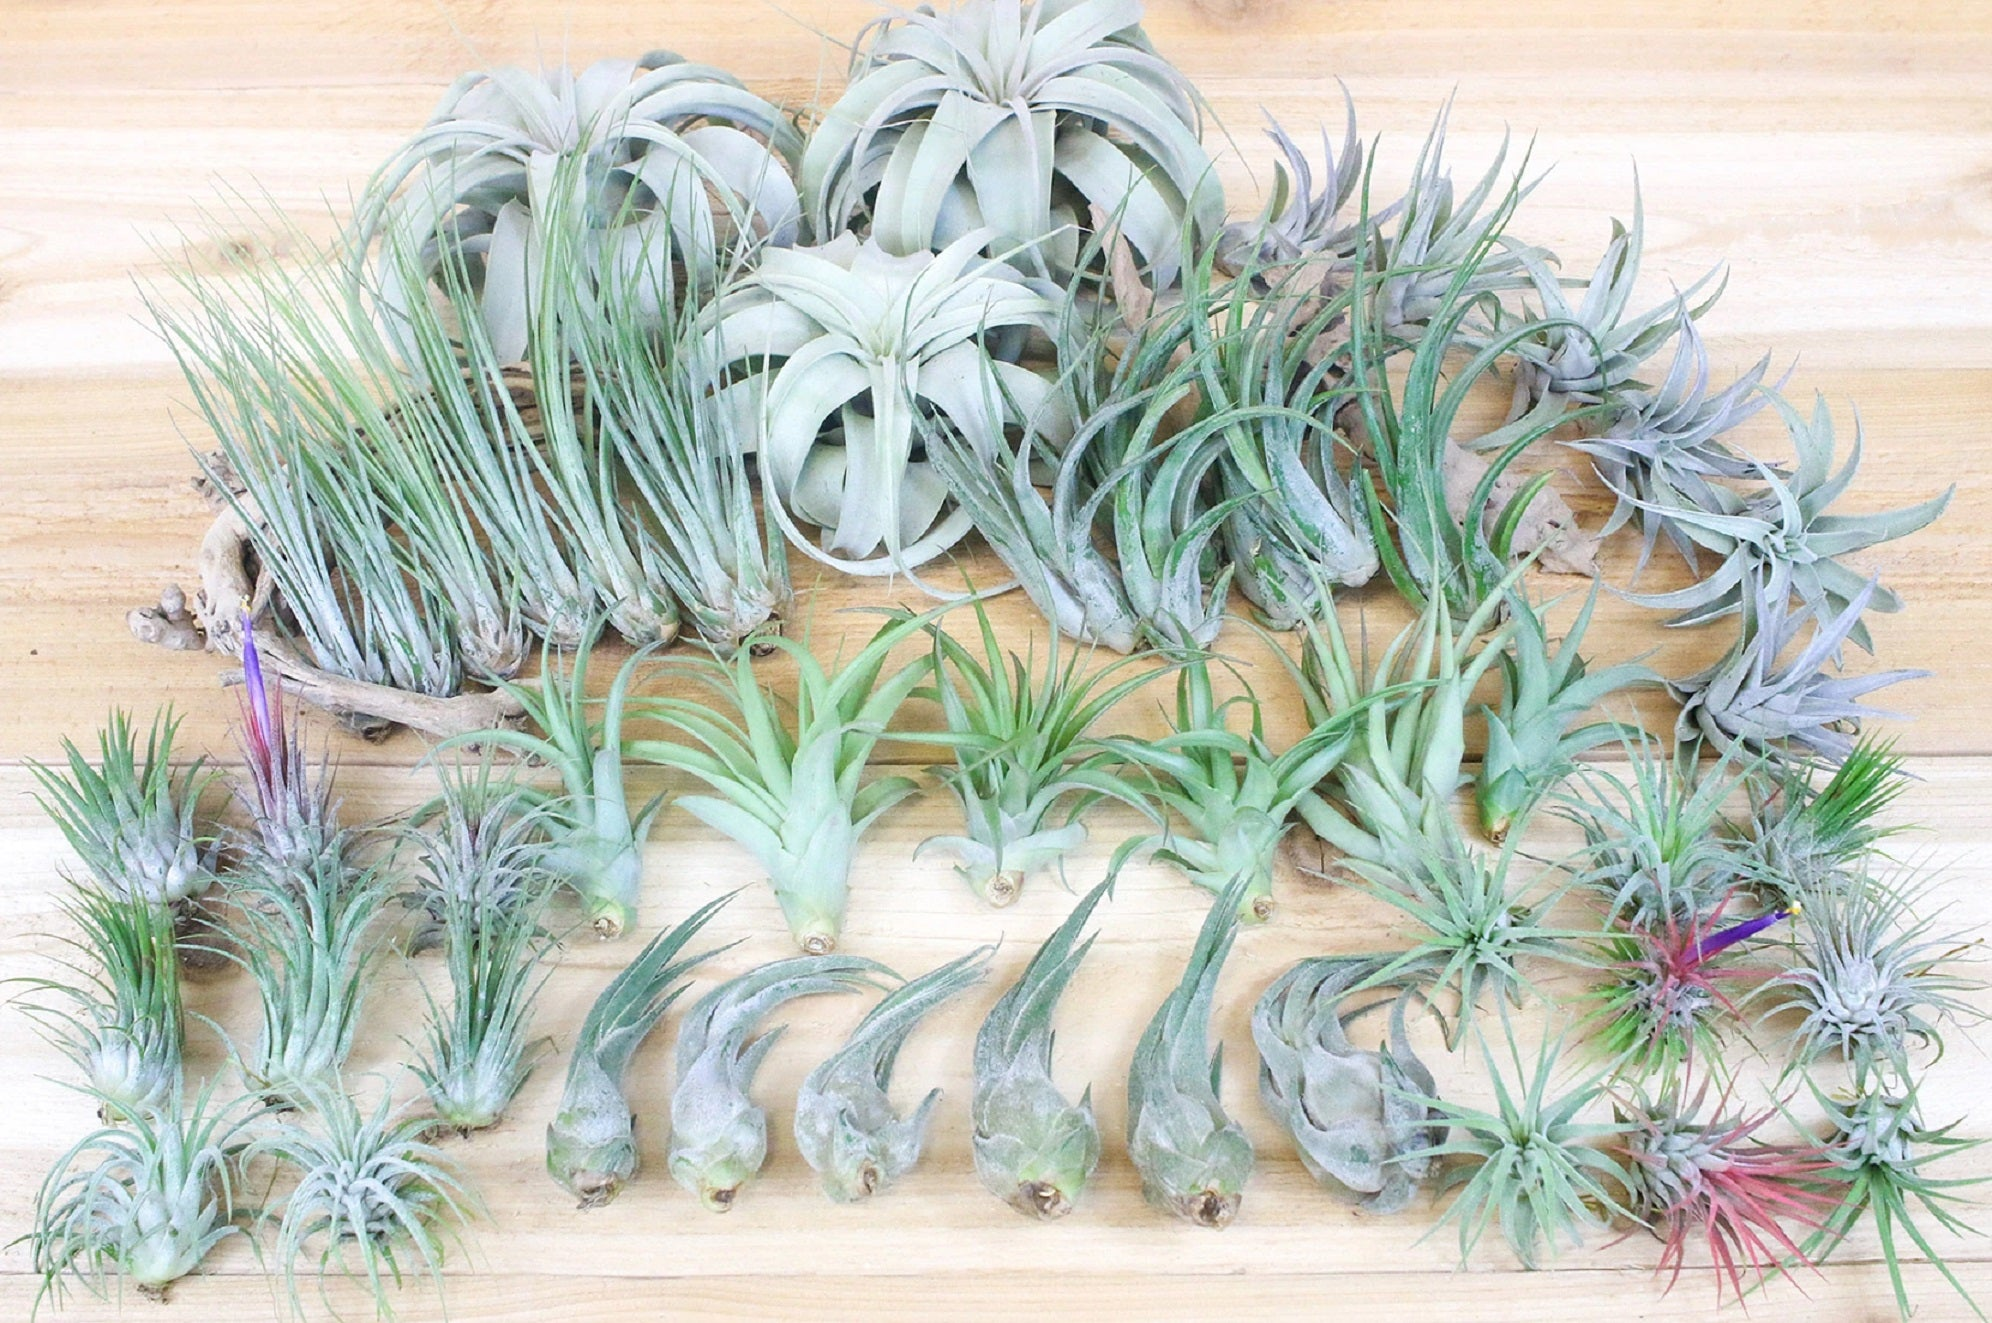 Live Air Plants bioactive